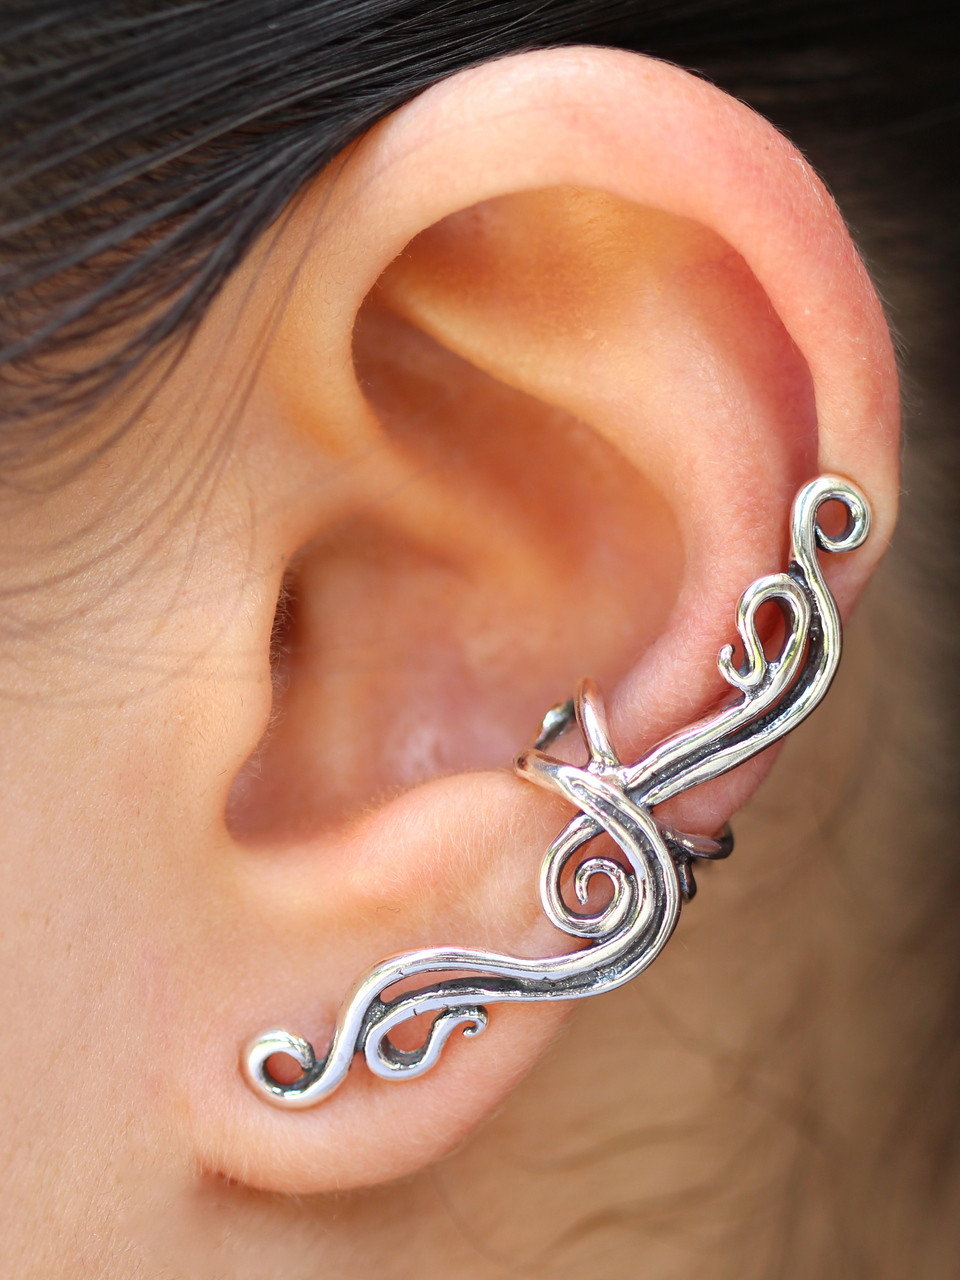 french twist ear cuff jewelry. Black Bedroom Furniture Sets. Home Design Ideas